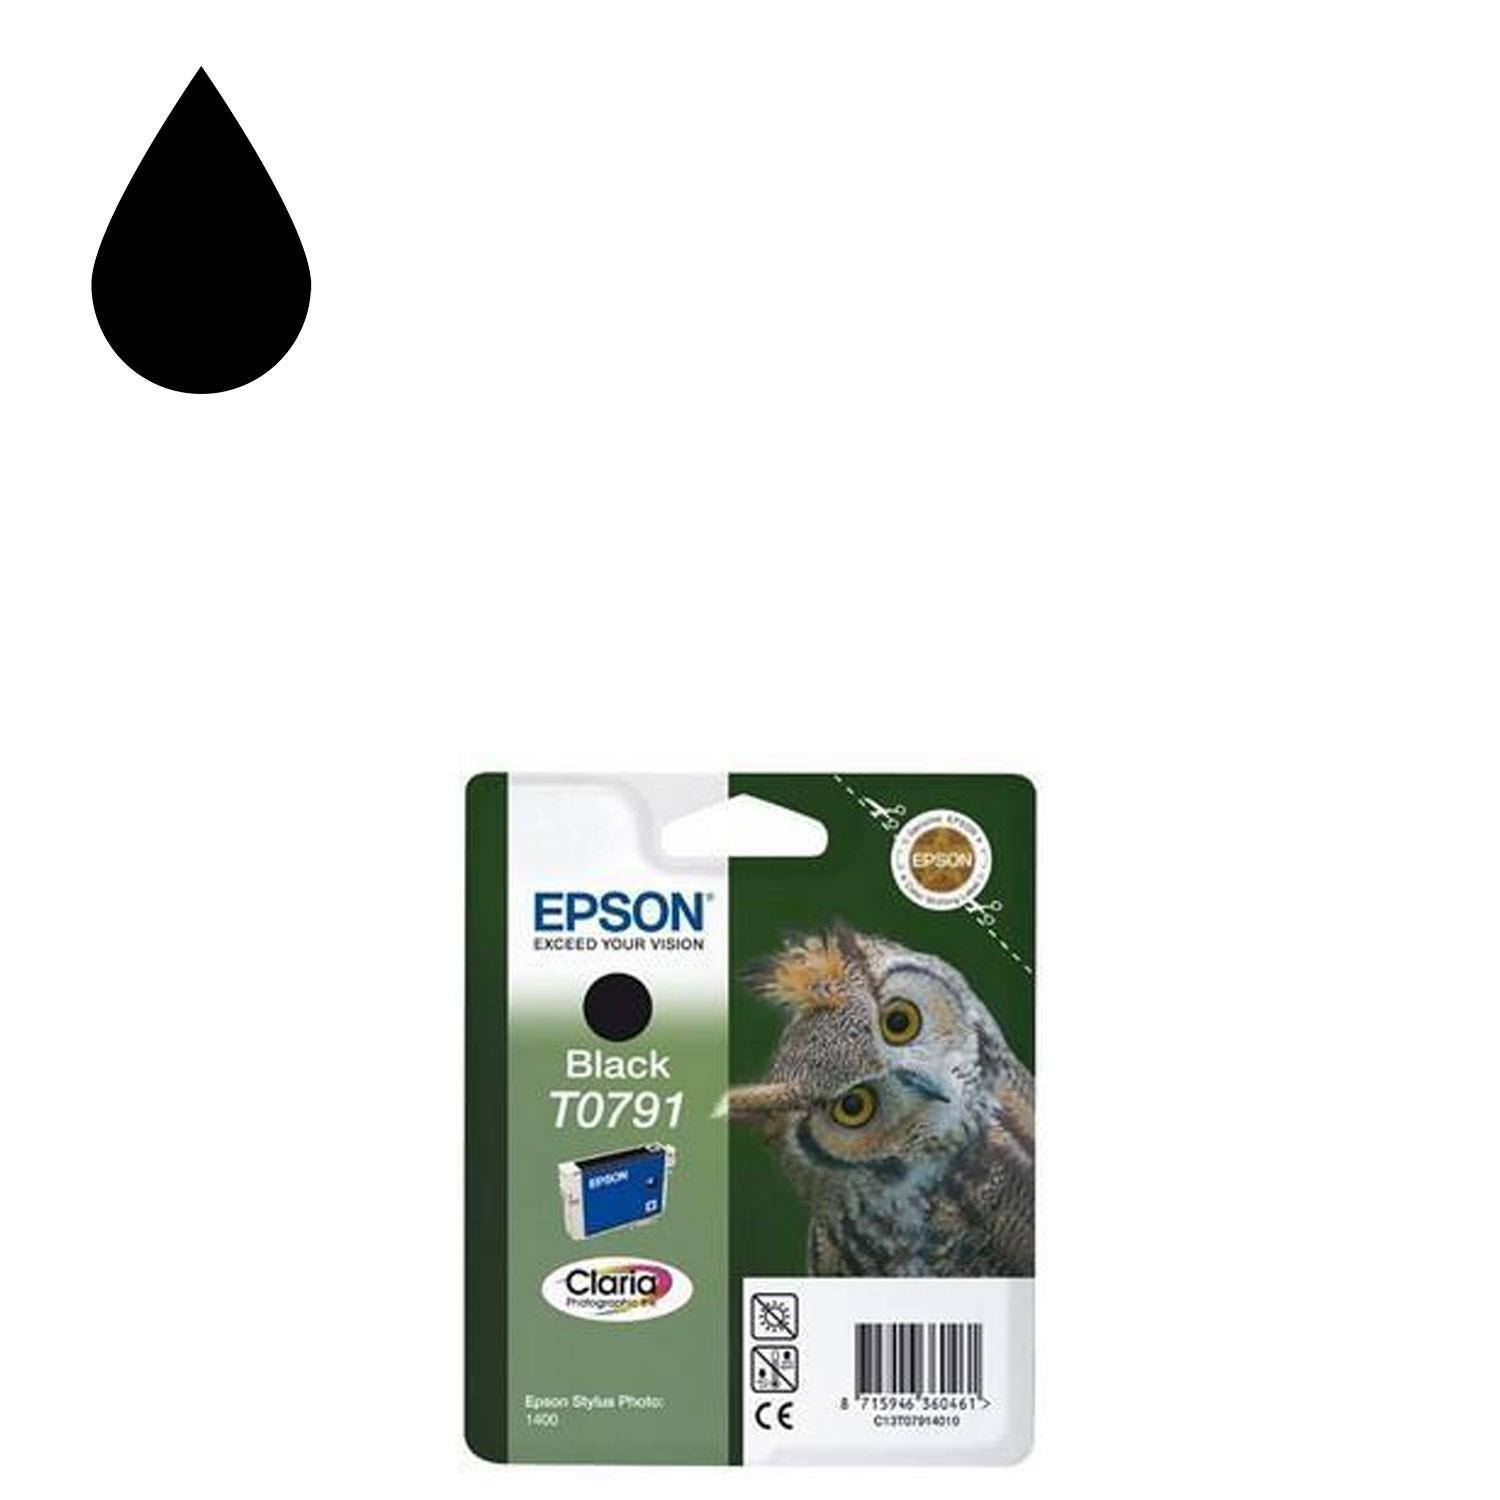 Epson Claria T0791 Black Owl Ink Cartridge